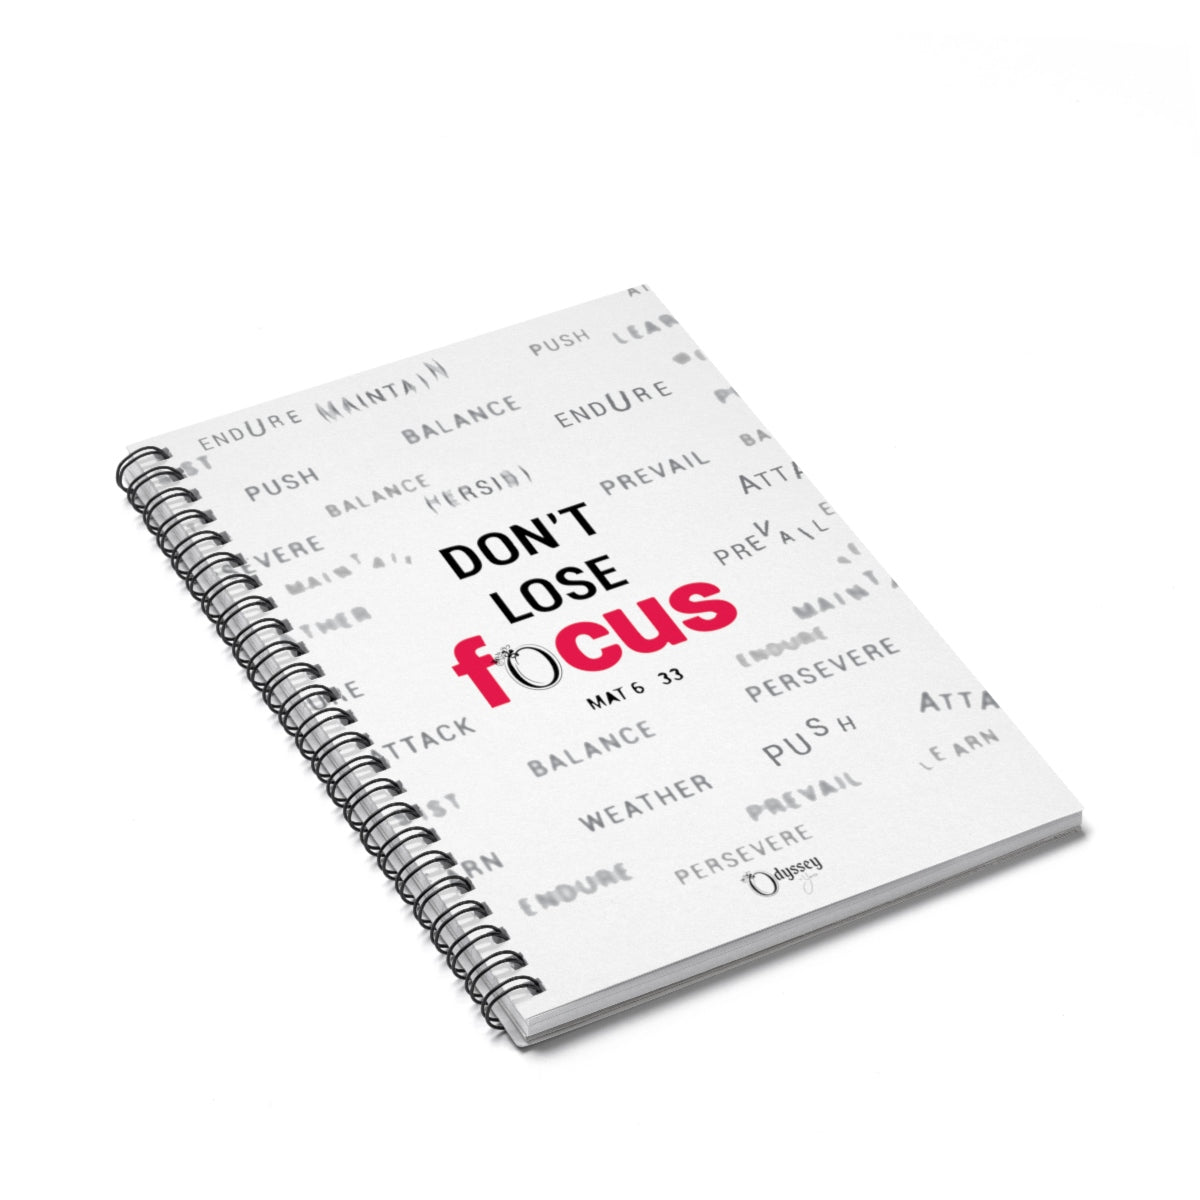 Odyssey Don't Lose Focus Spiral Notebook - Paper products - Odyssey By Yendi